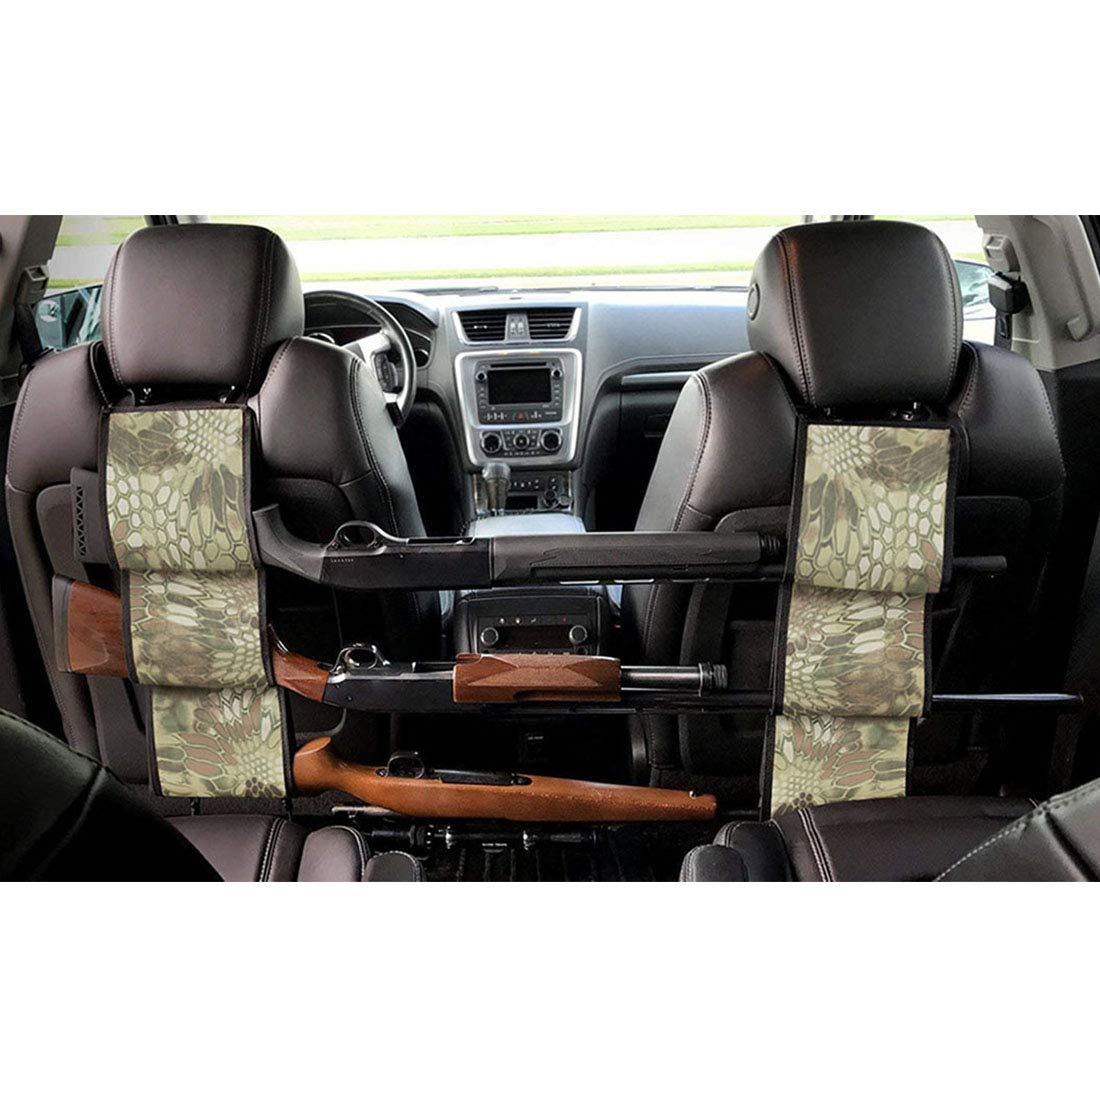 LOVIT Car Concealed Seat Back Gun Rack,Hunting Gear Seat Back Gun Sling Holder Universal Shooting Accessories, Fit for Vehicles (Snake Camo)